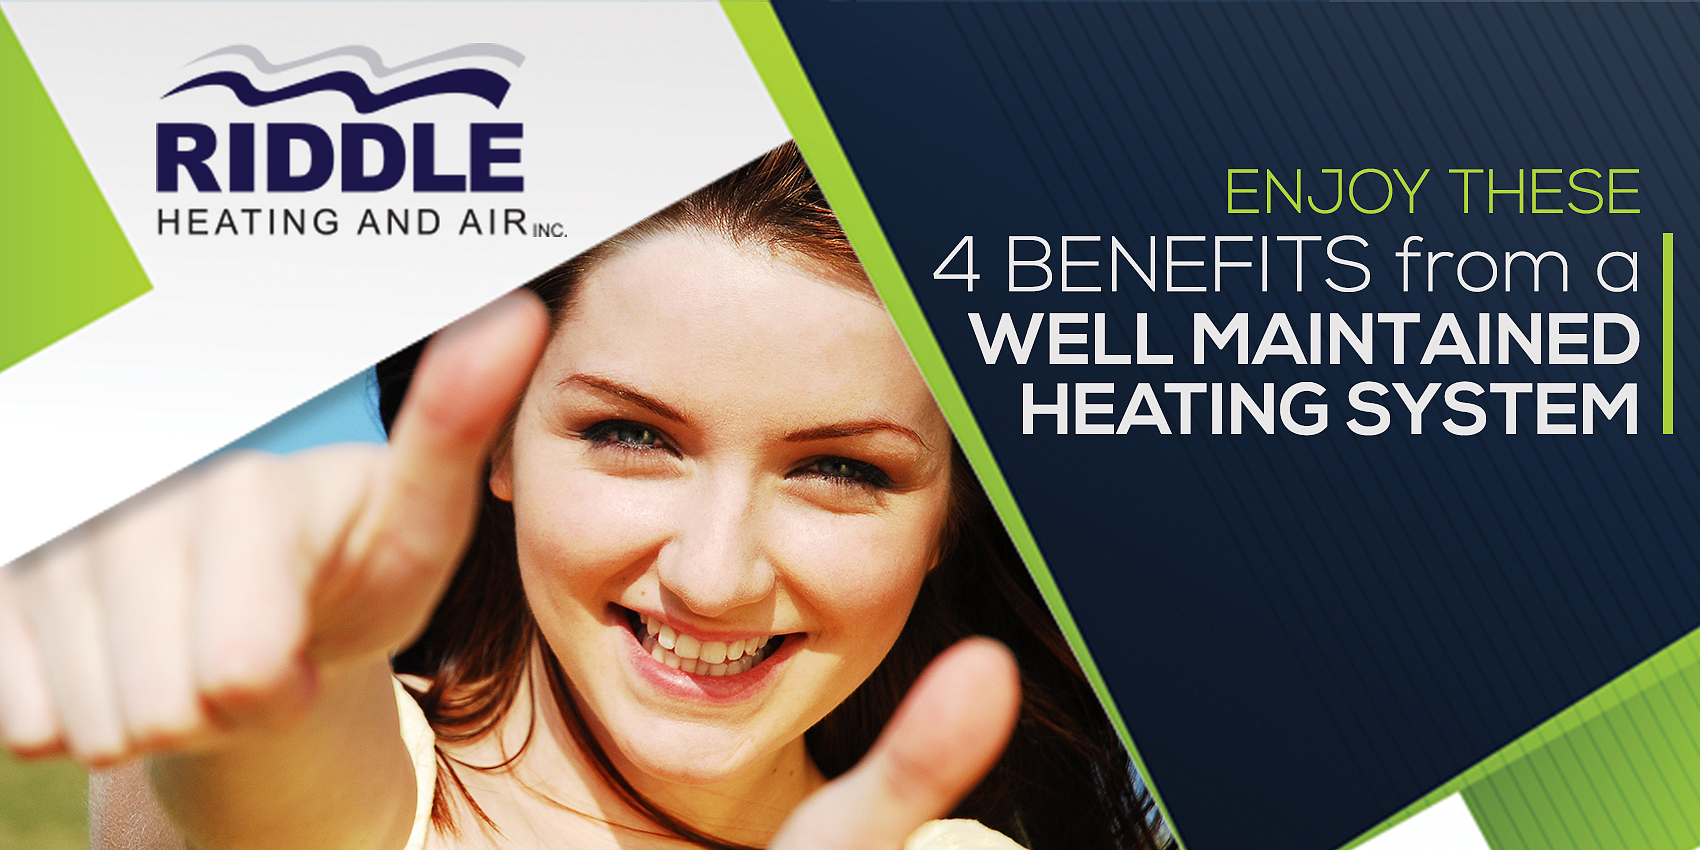 Enjoy These 4 Benefits from a Well-Maintained Heating System